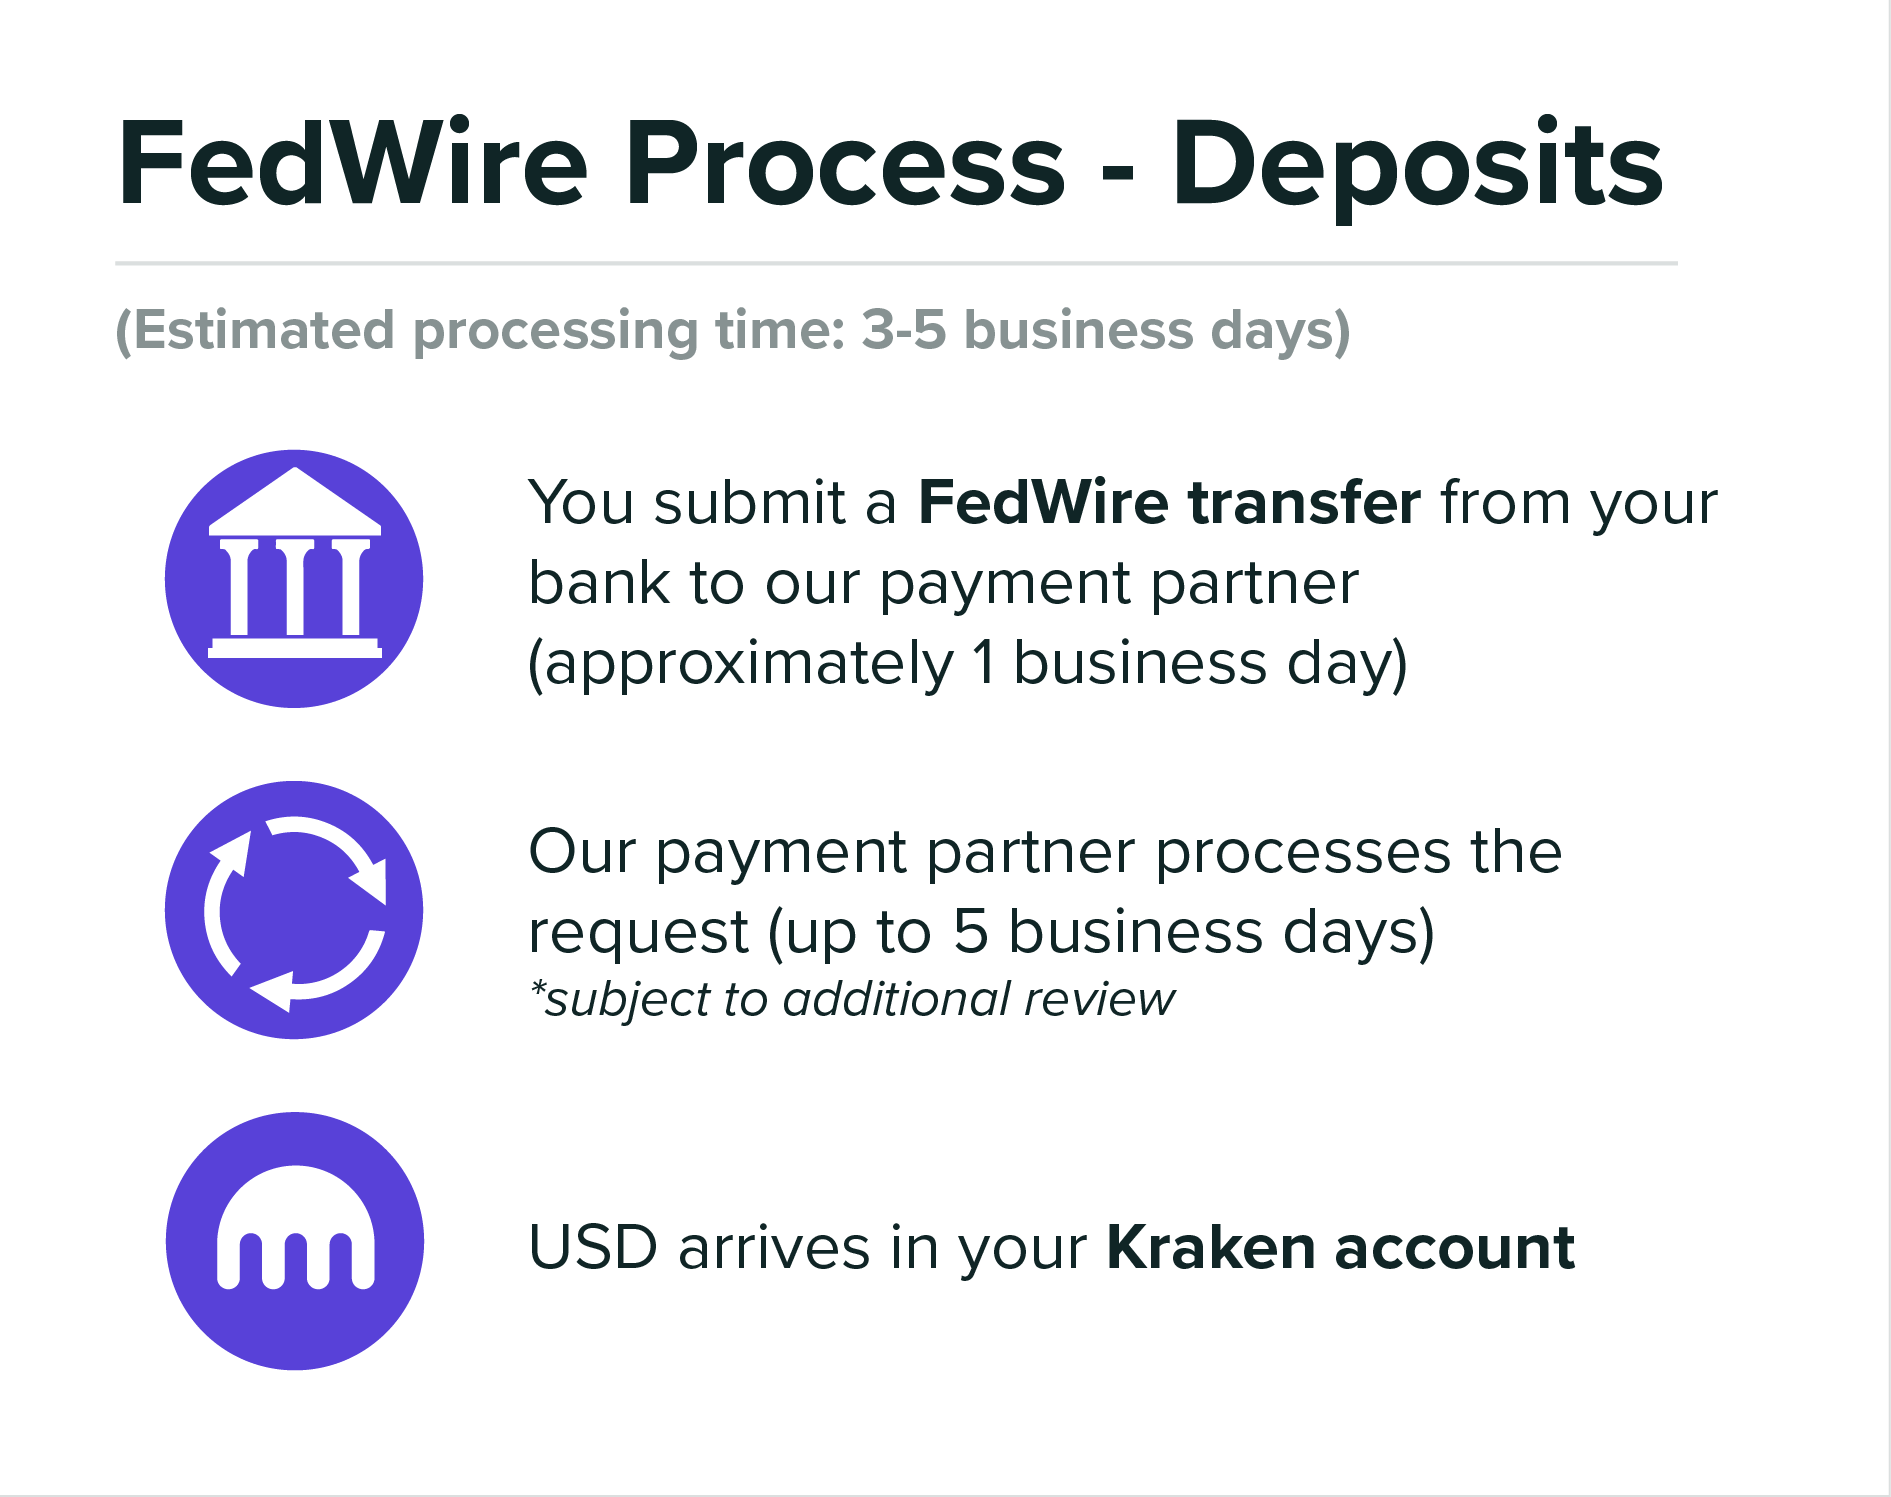 Funding_FedwireProcessDeposits_10062020.png